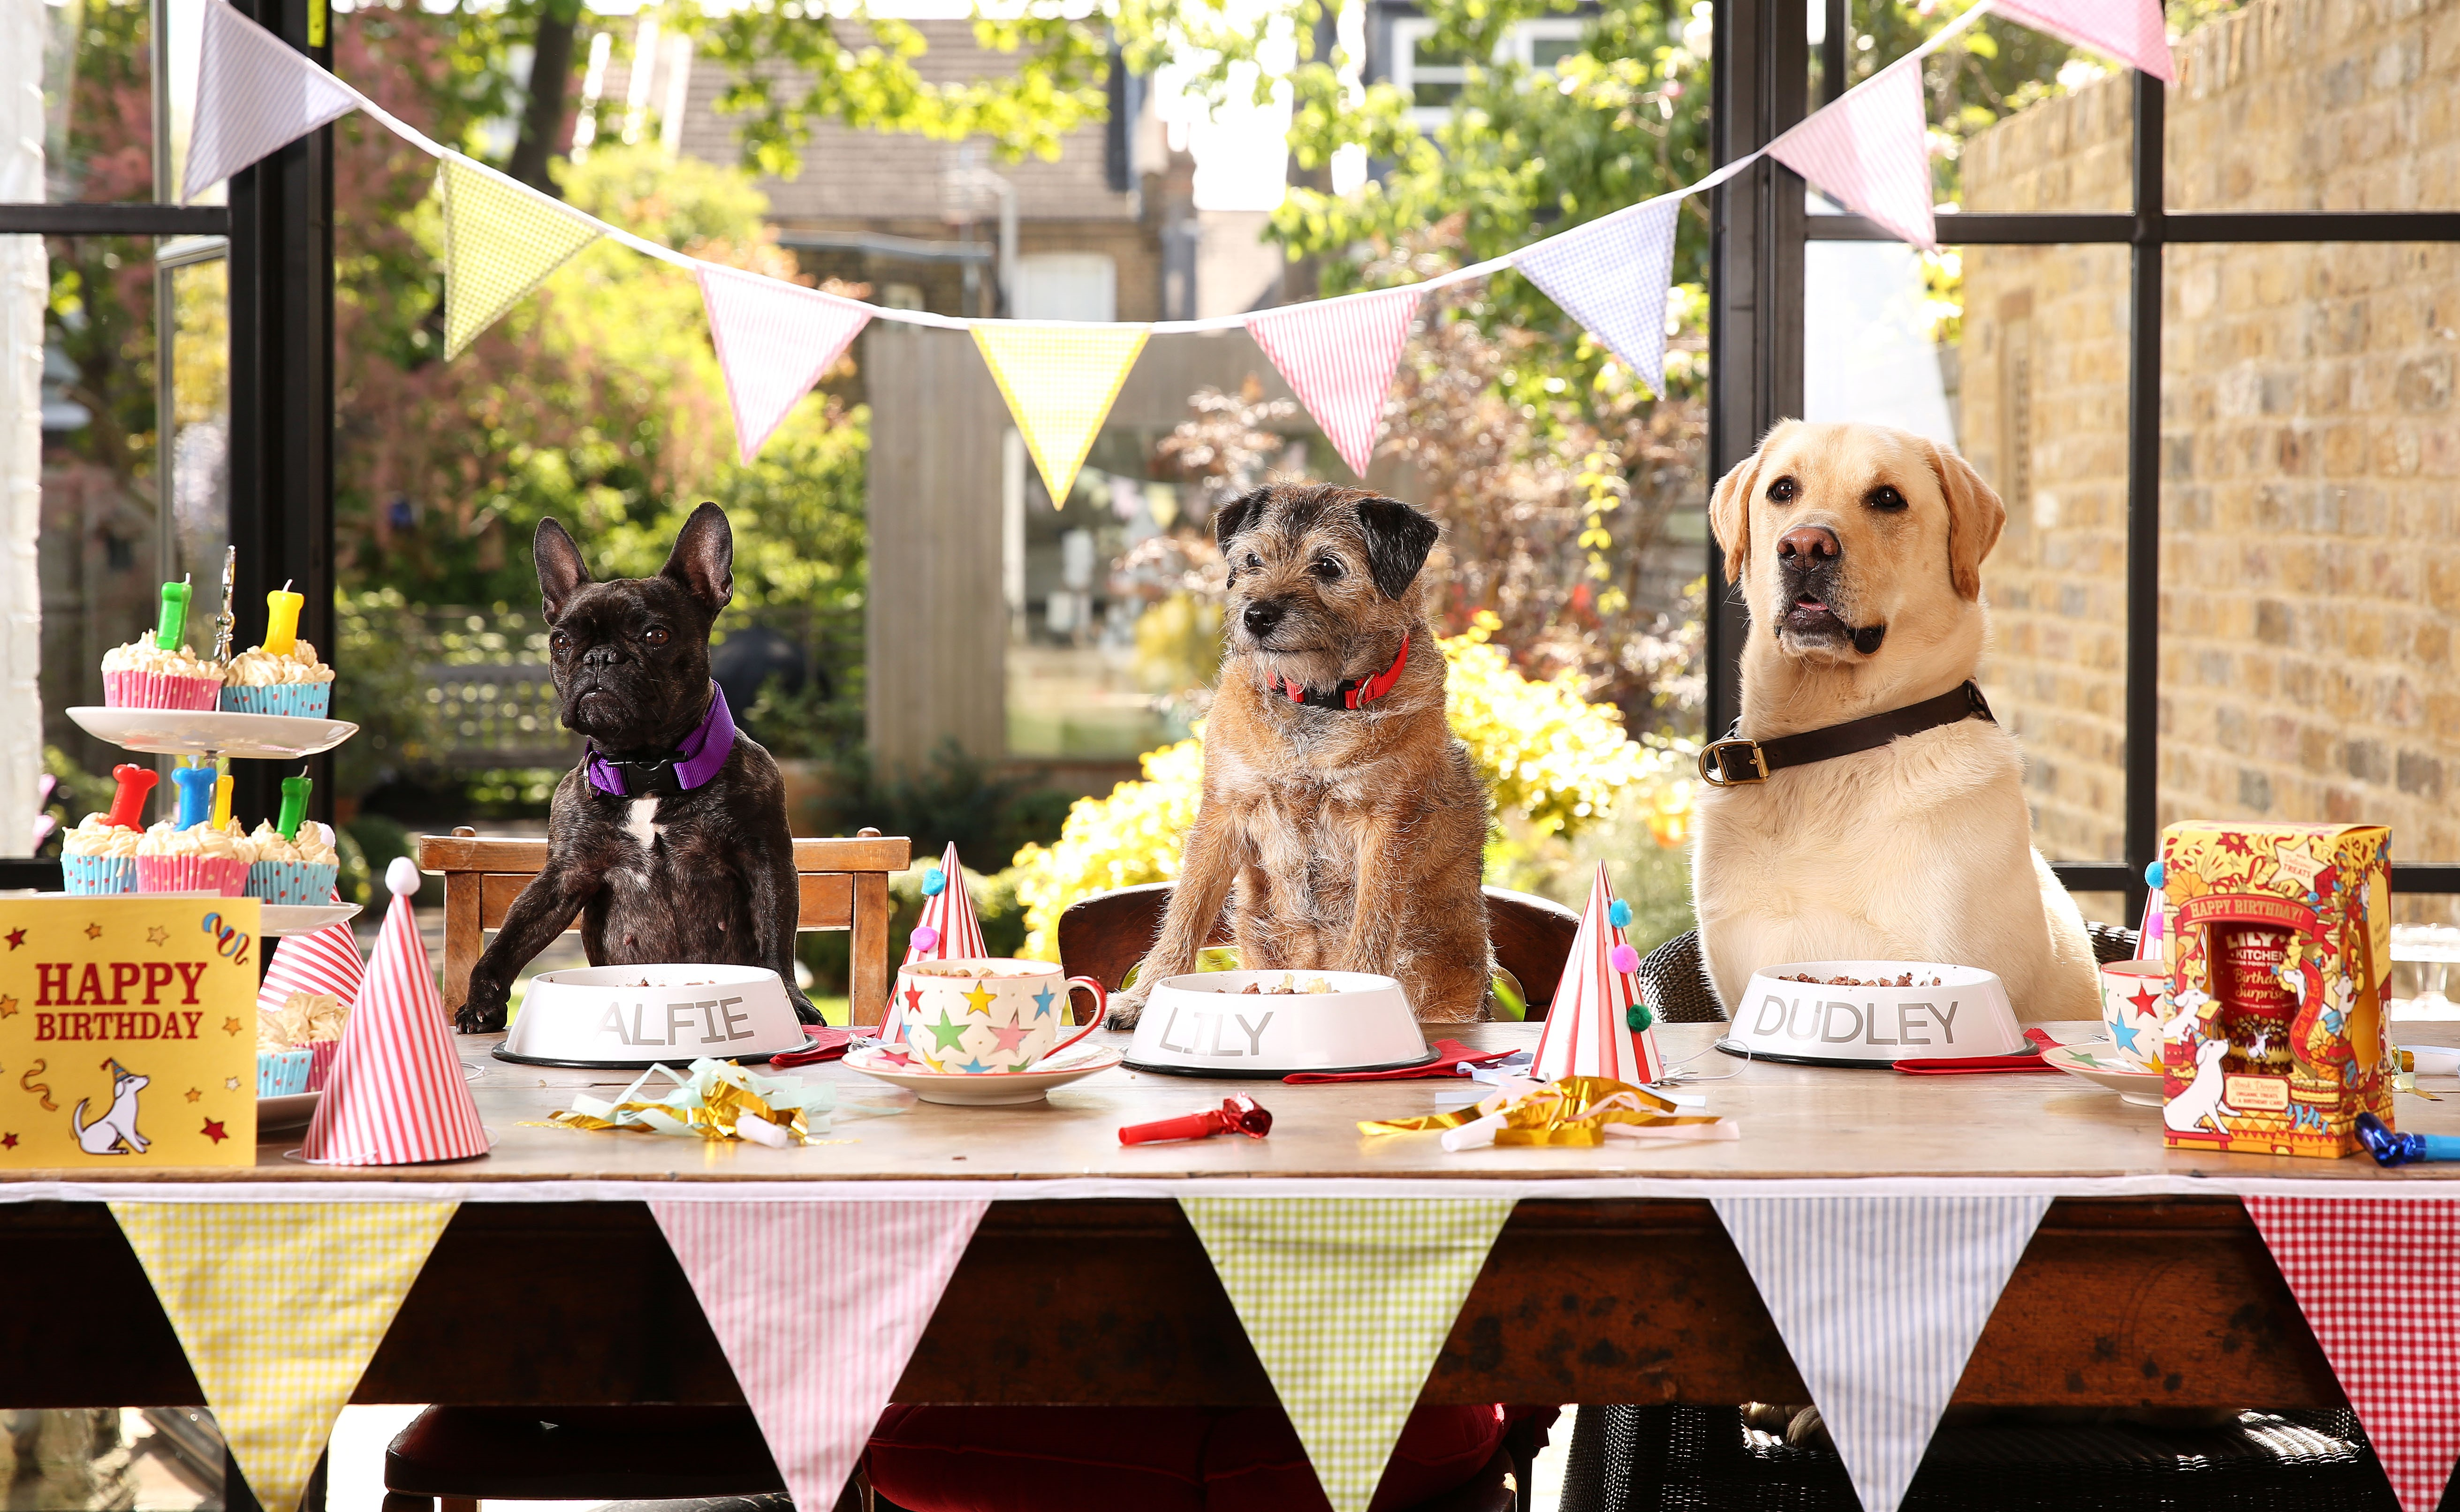 Children Arent The Only Ones Being Lavished With Extra Special Birthday Celebrations As New Research Reveals 75 Of Pet Owners Celebrate Their Dogs